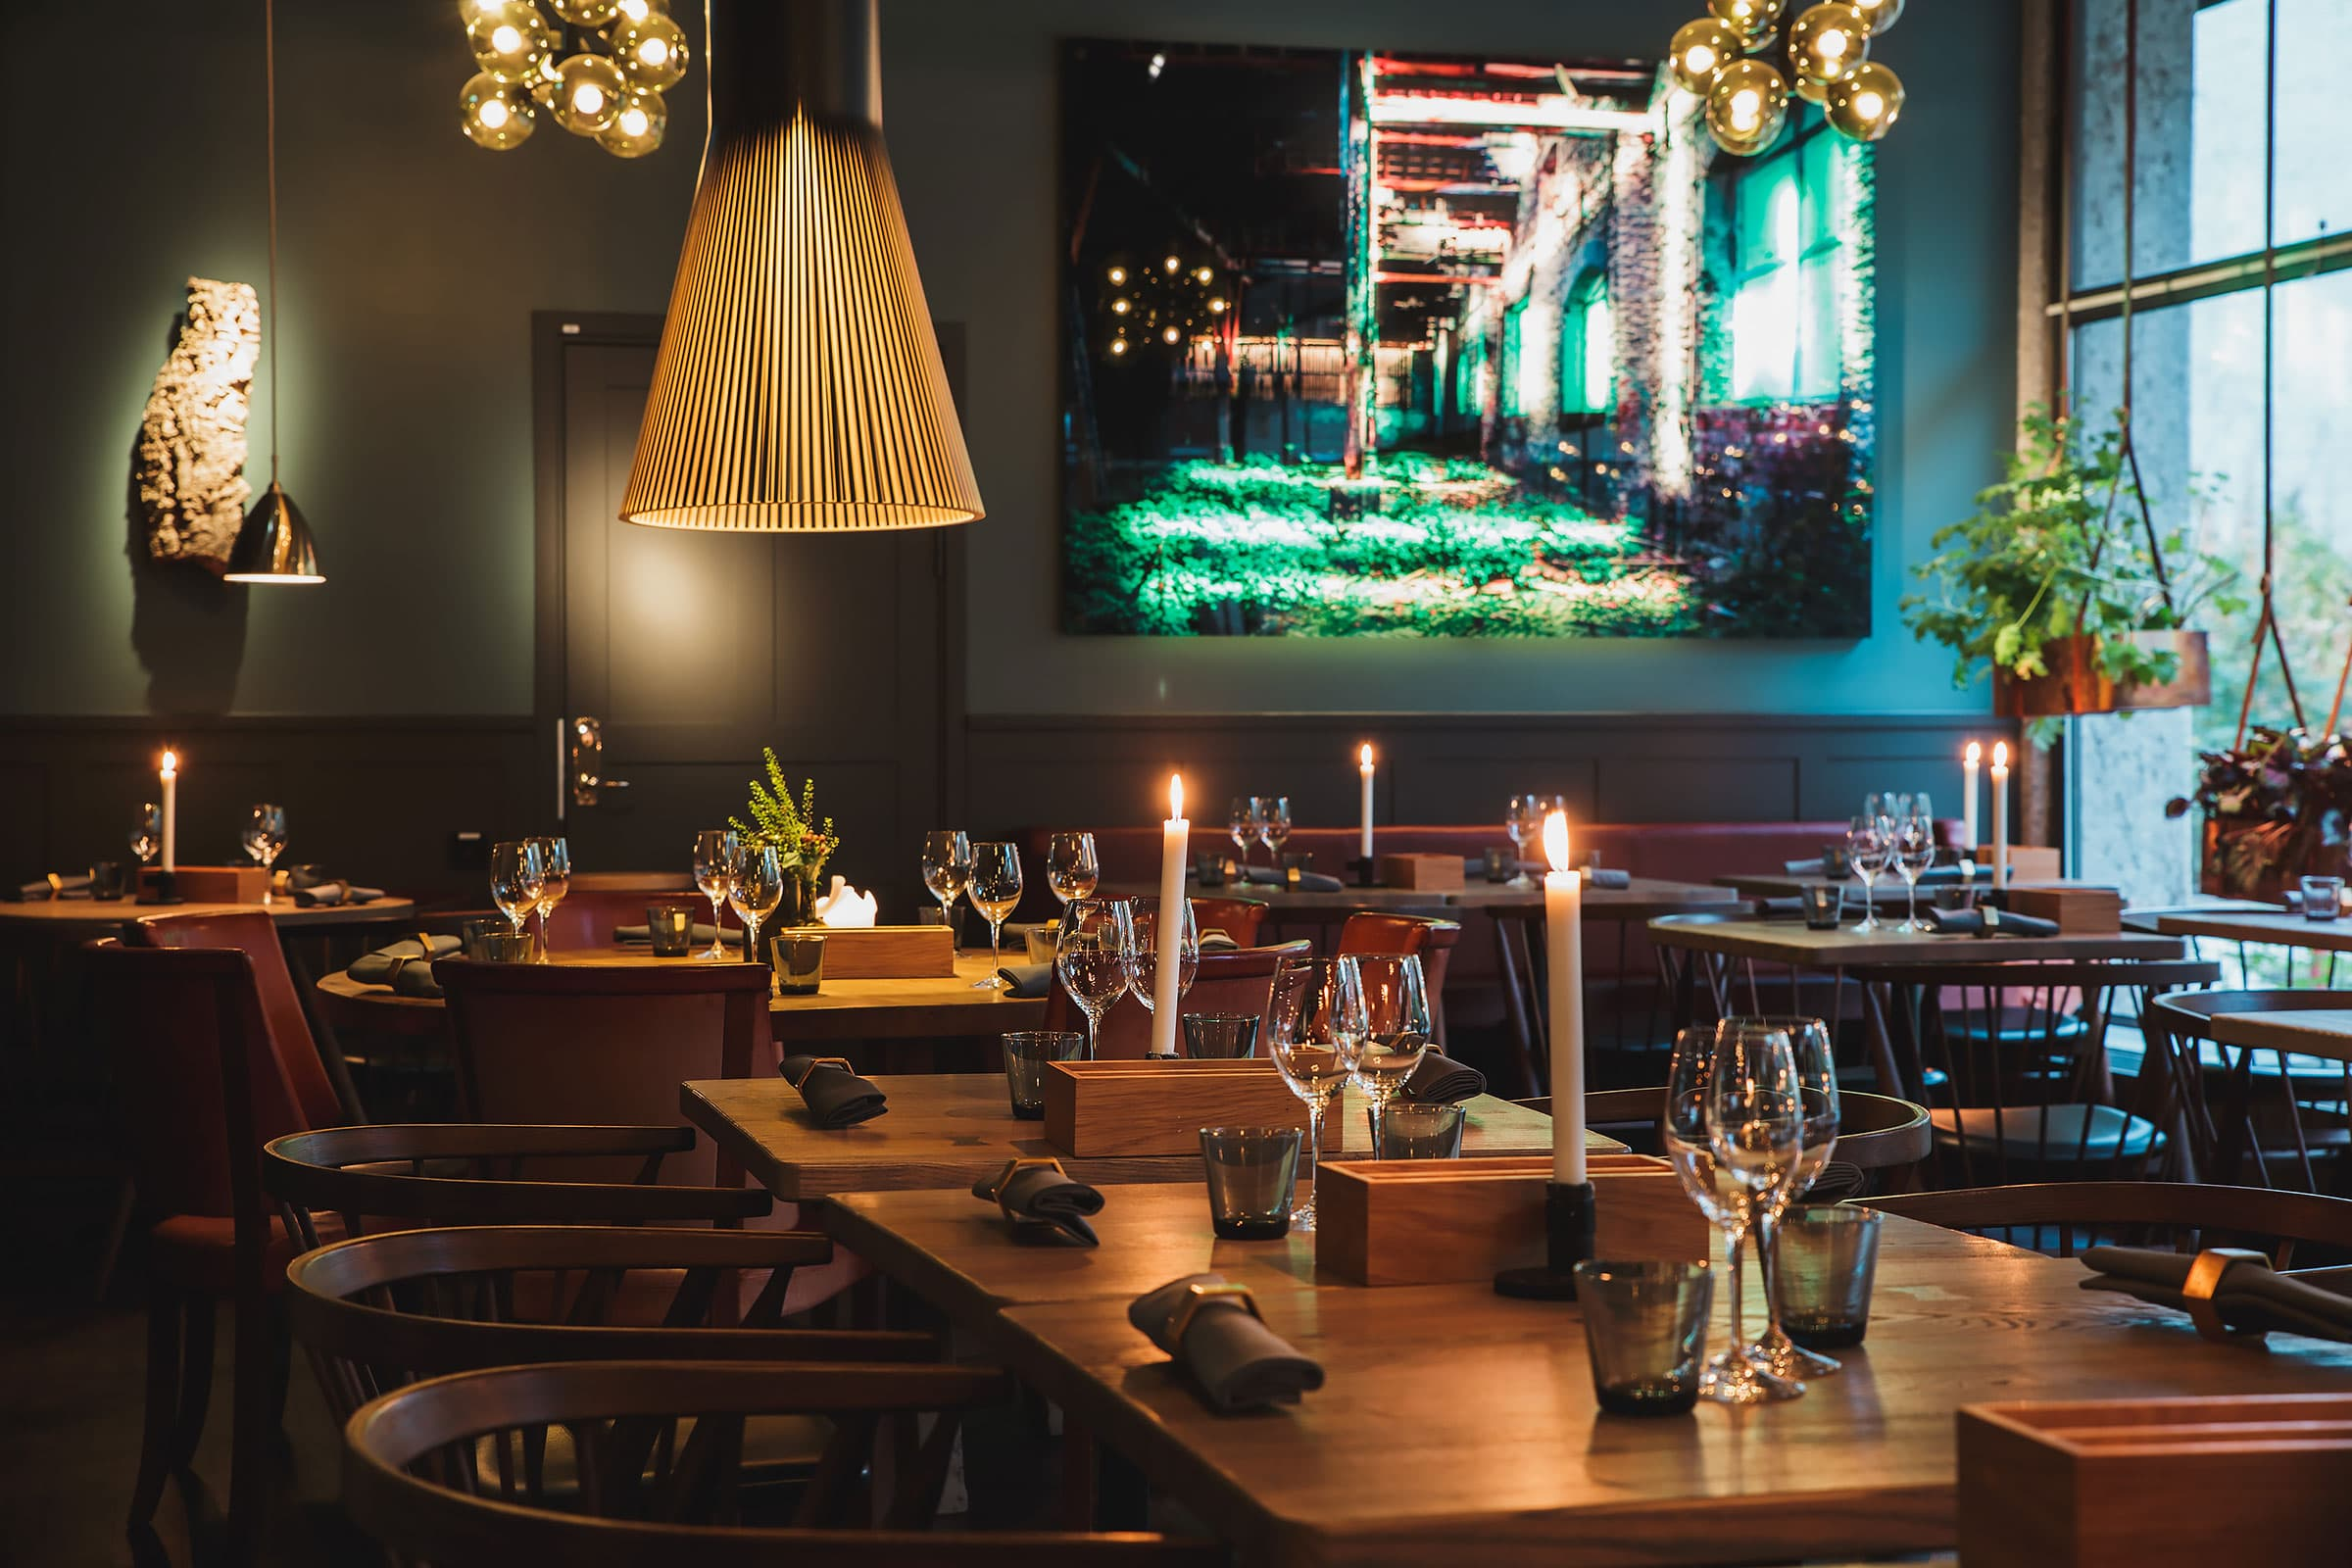 Design restaurants with cool concepts in Stockholm – Thatsup